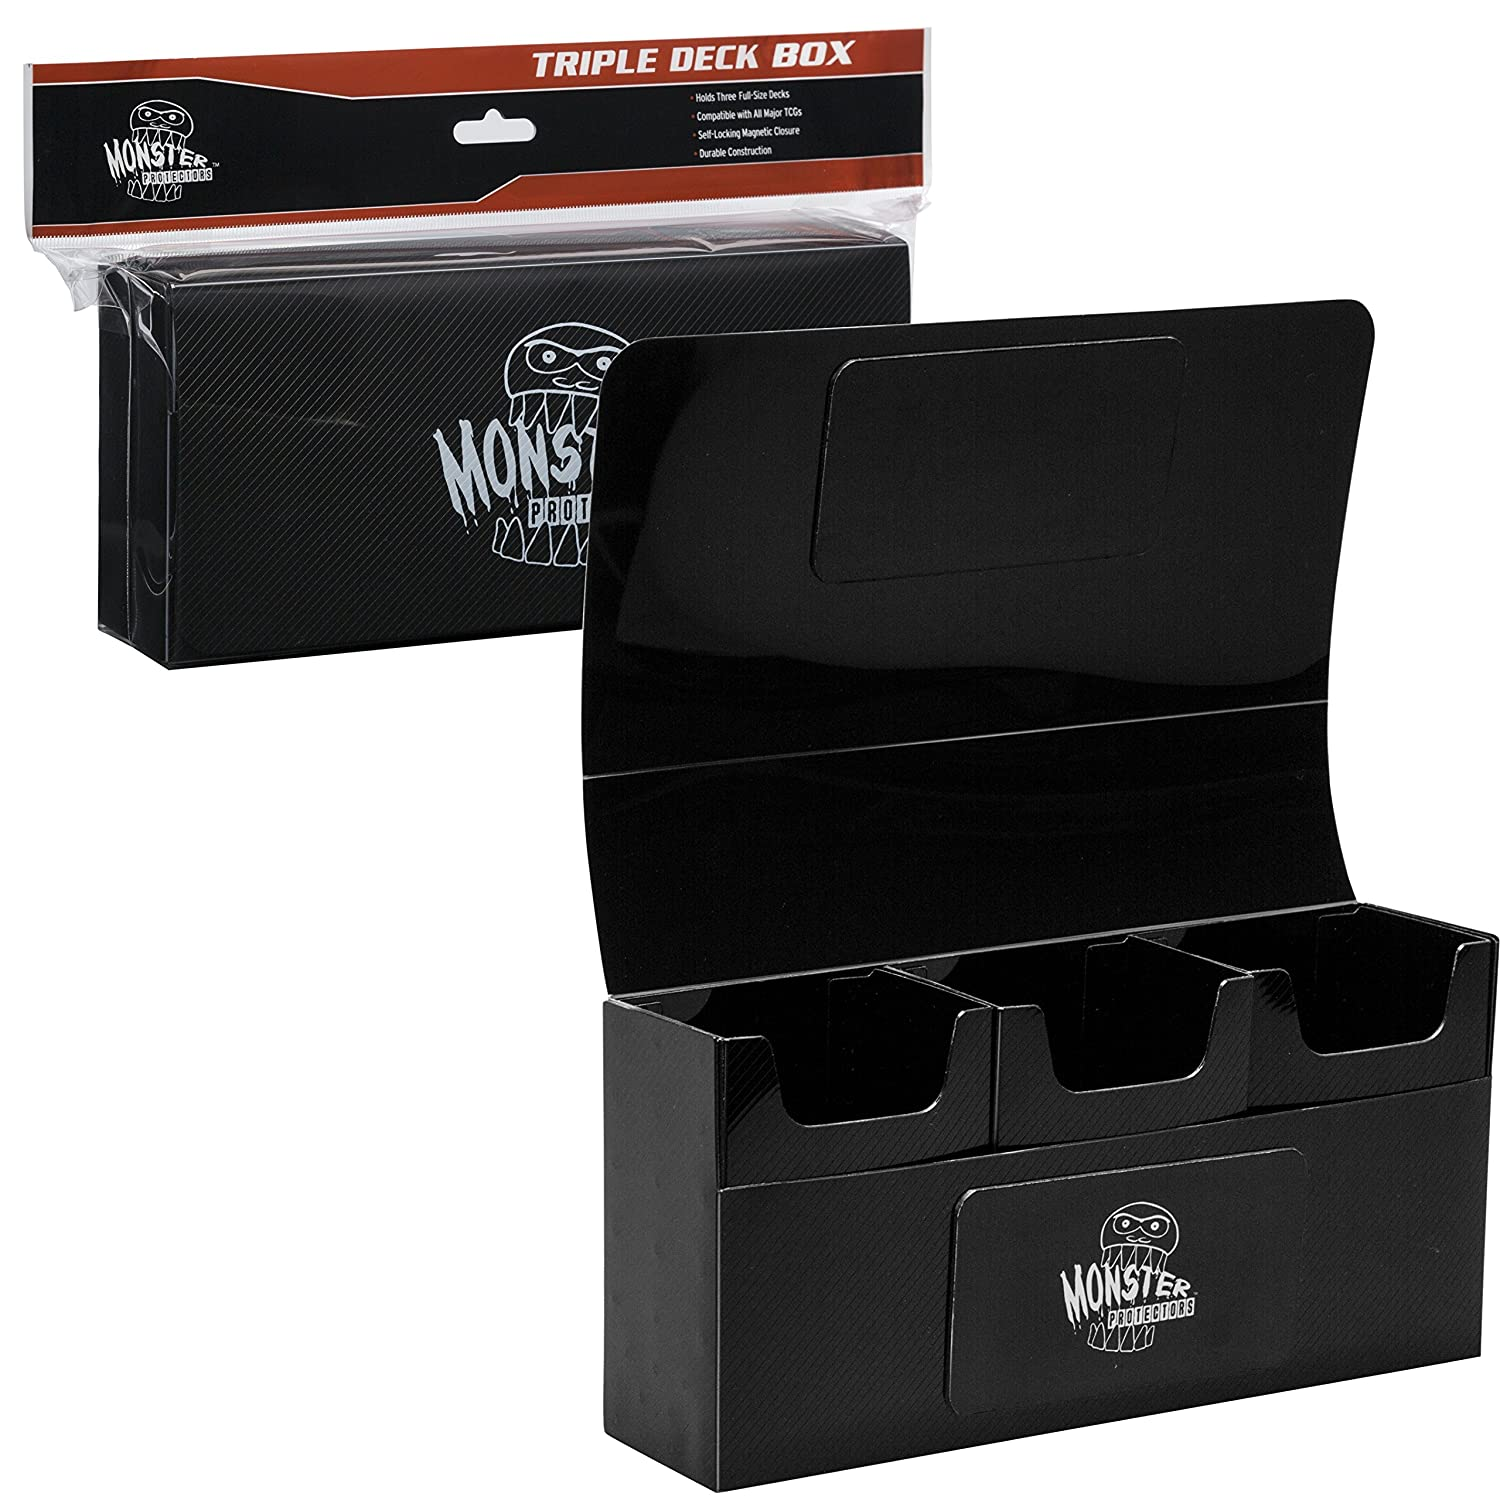 Deck box magnetic triple deck box black by monster for Sideboard yugioh